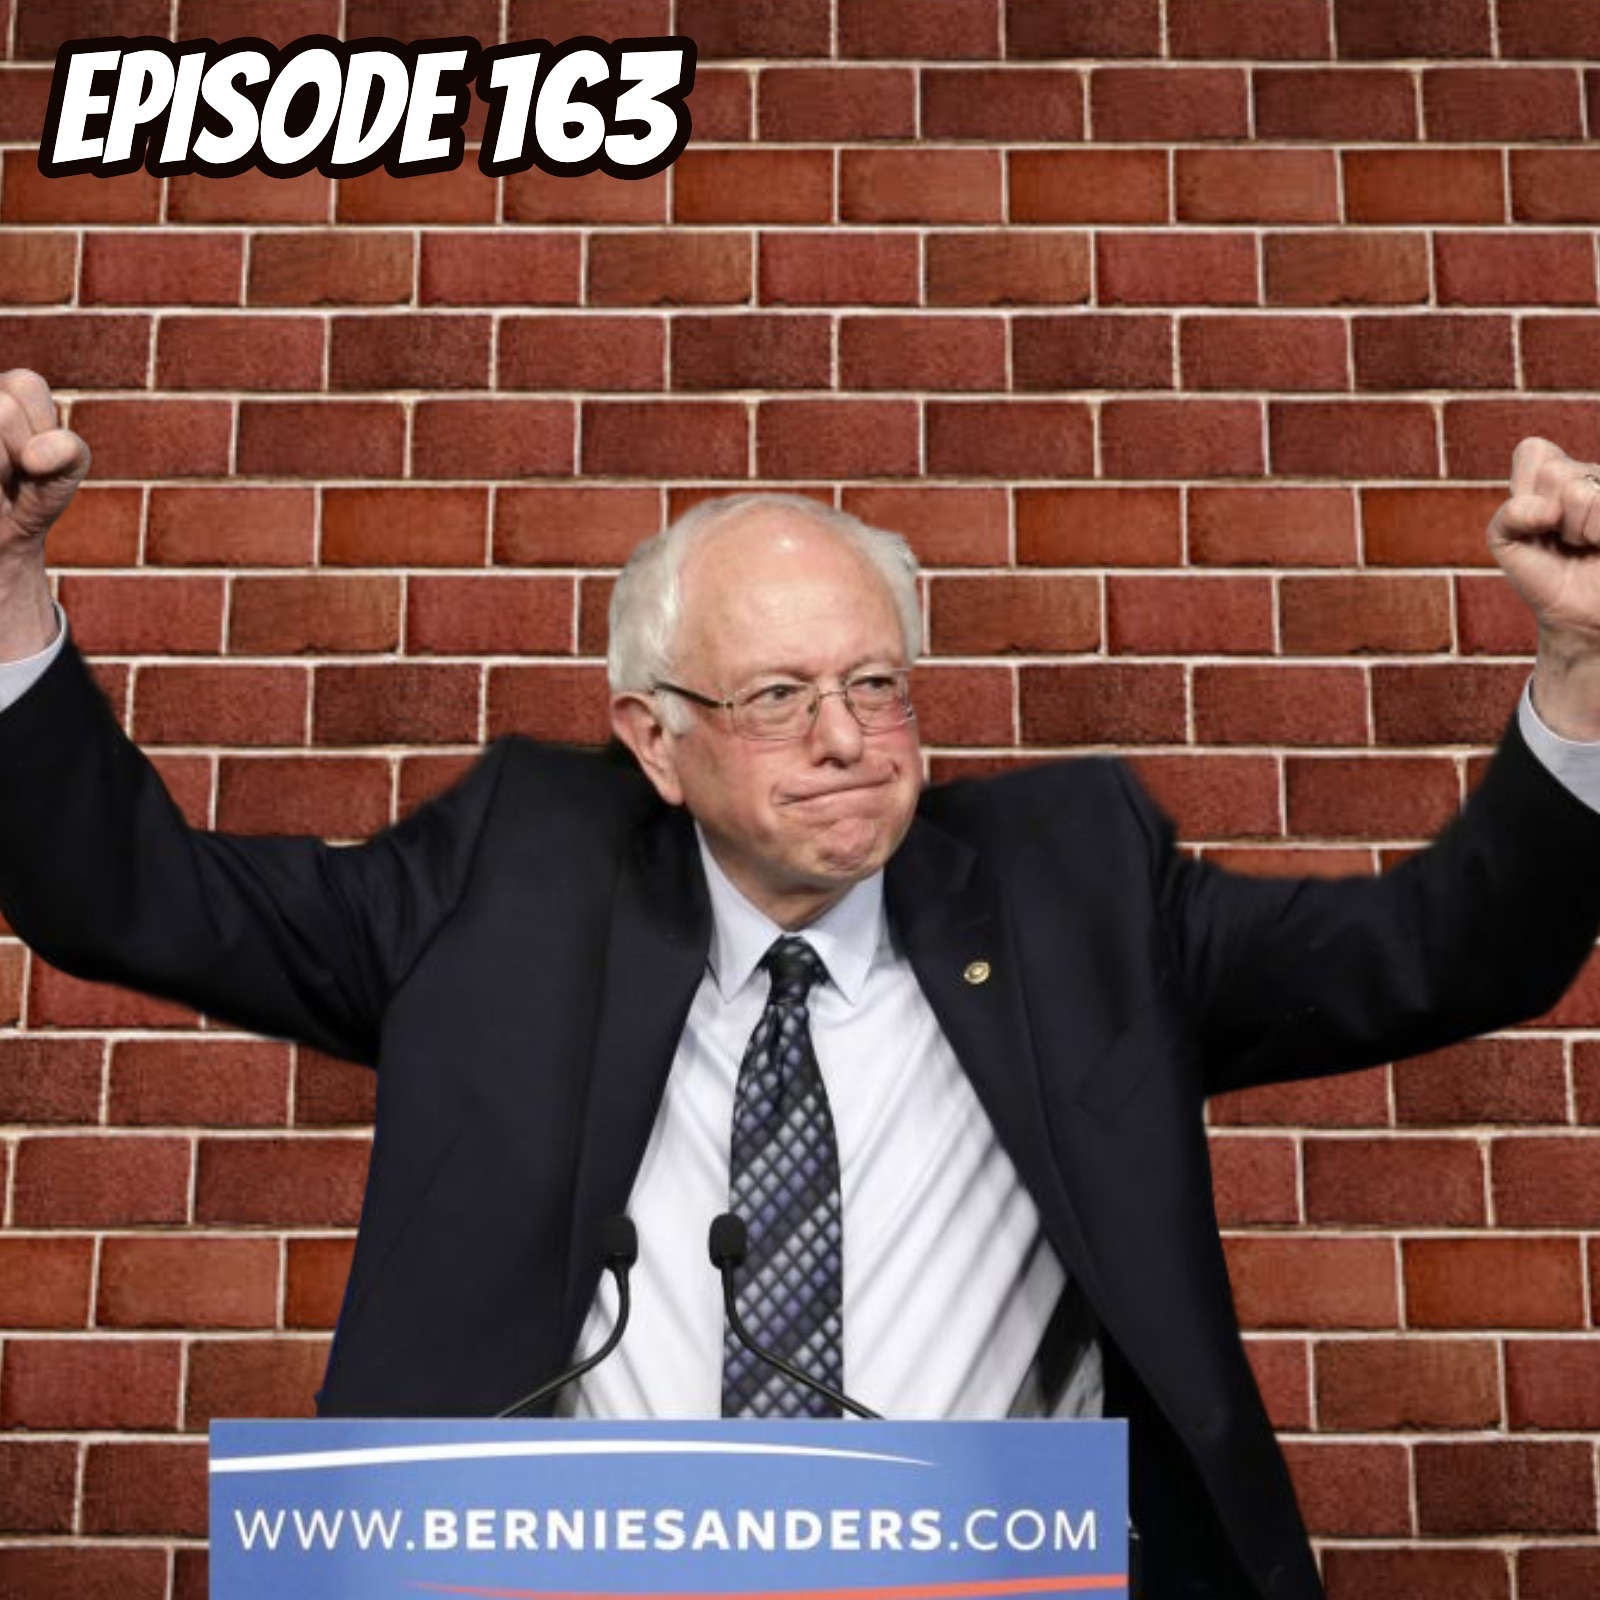 Look Forward - Ep163: Medicare for All, and Mexico Will Pay for It!